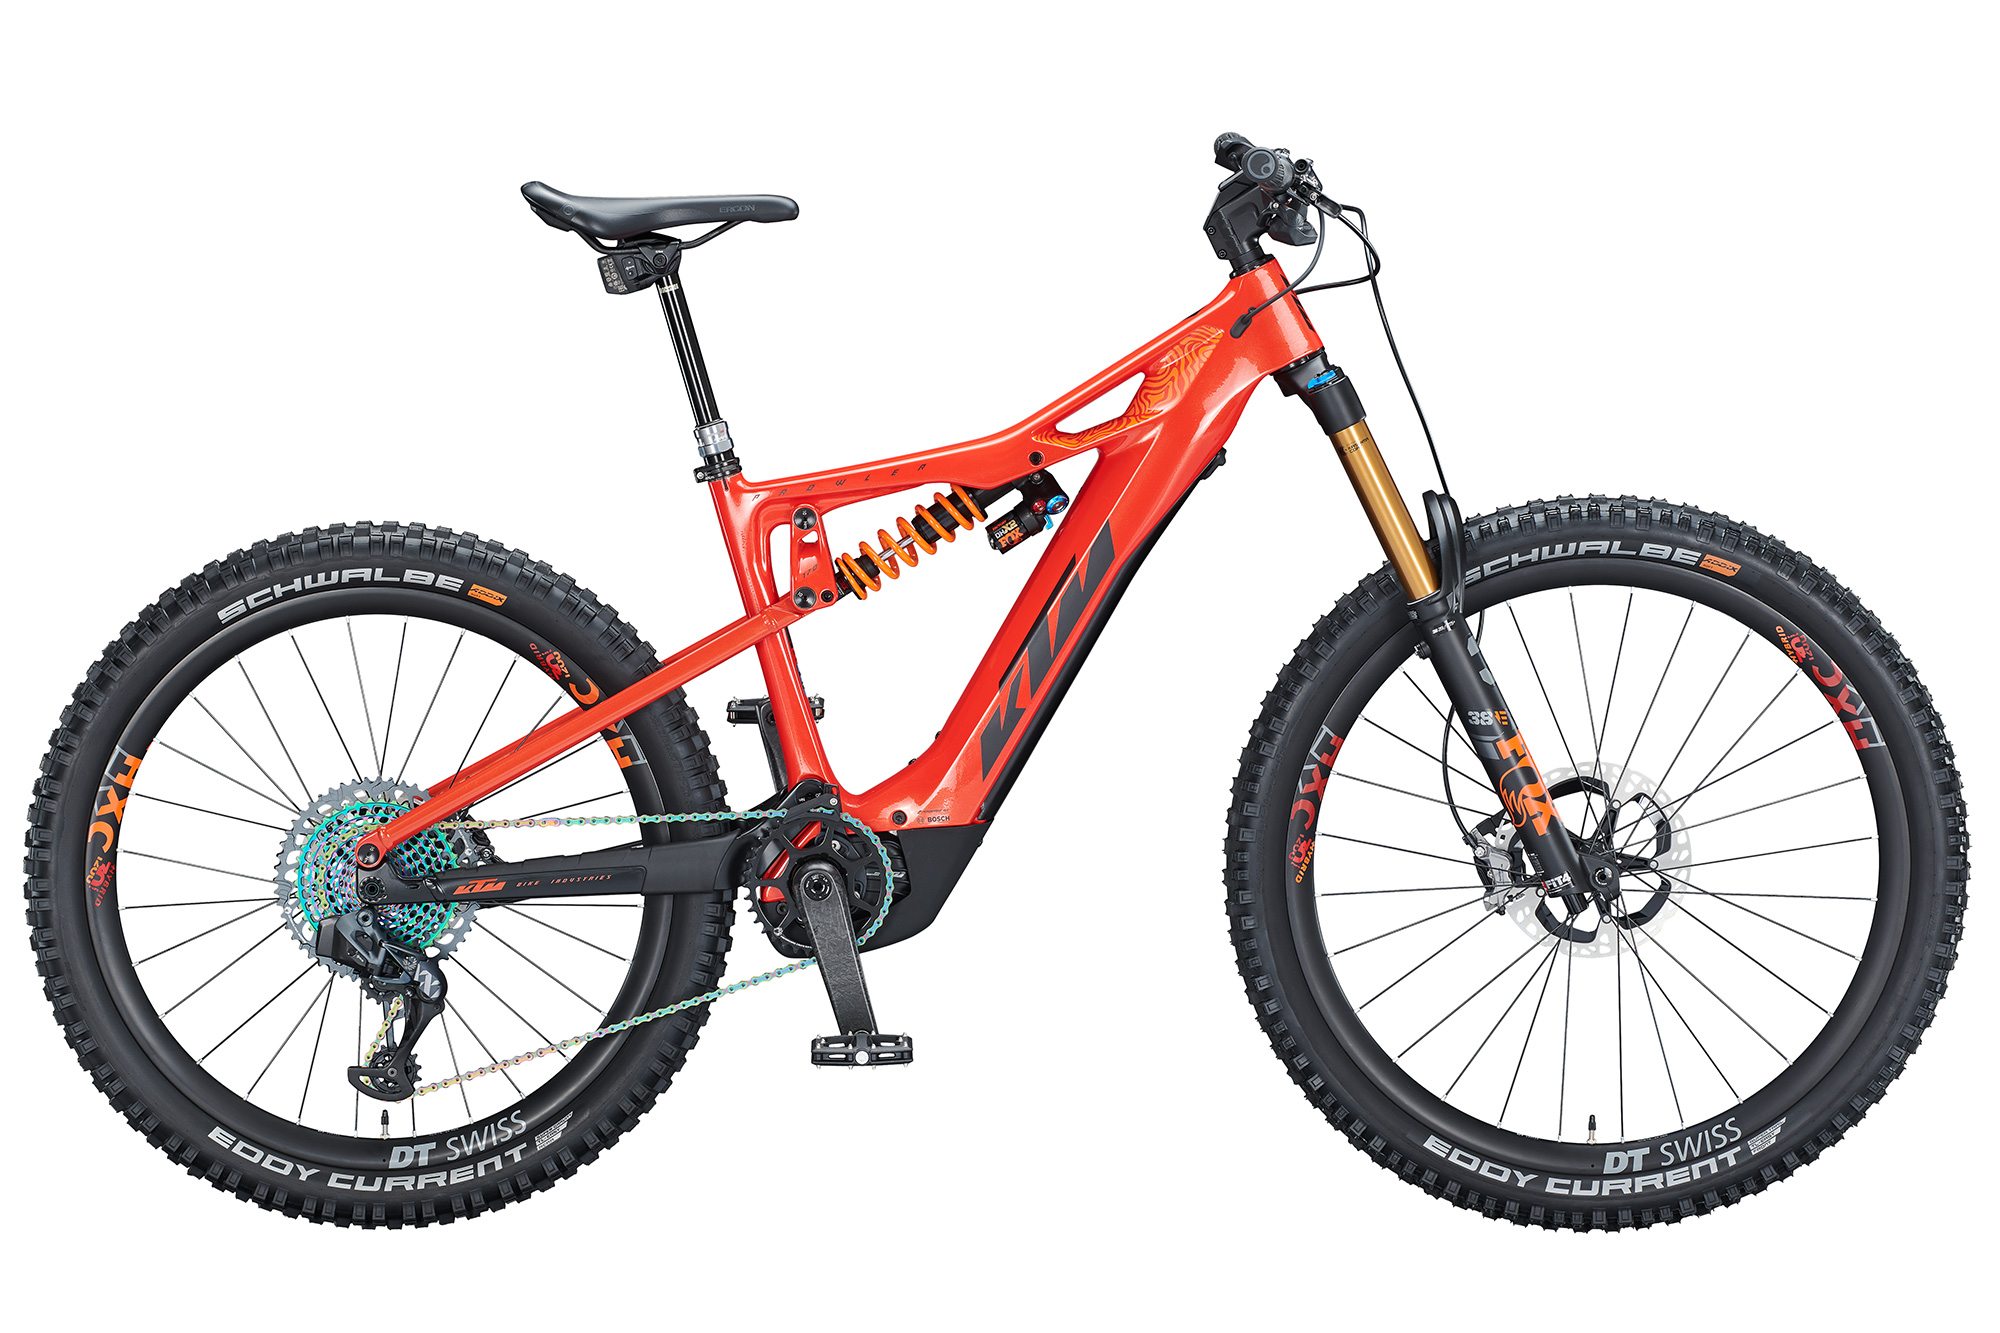 KTM Macina Prowler Exonic - fire orange - 2021